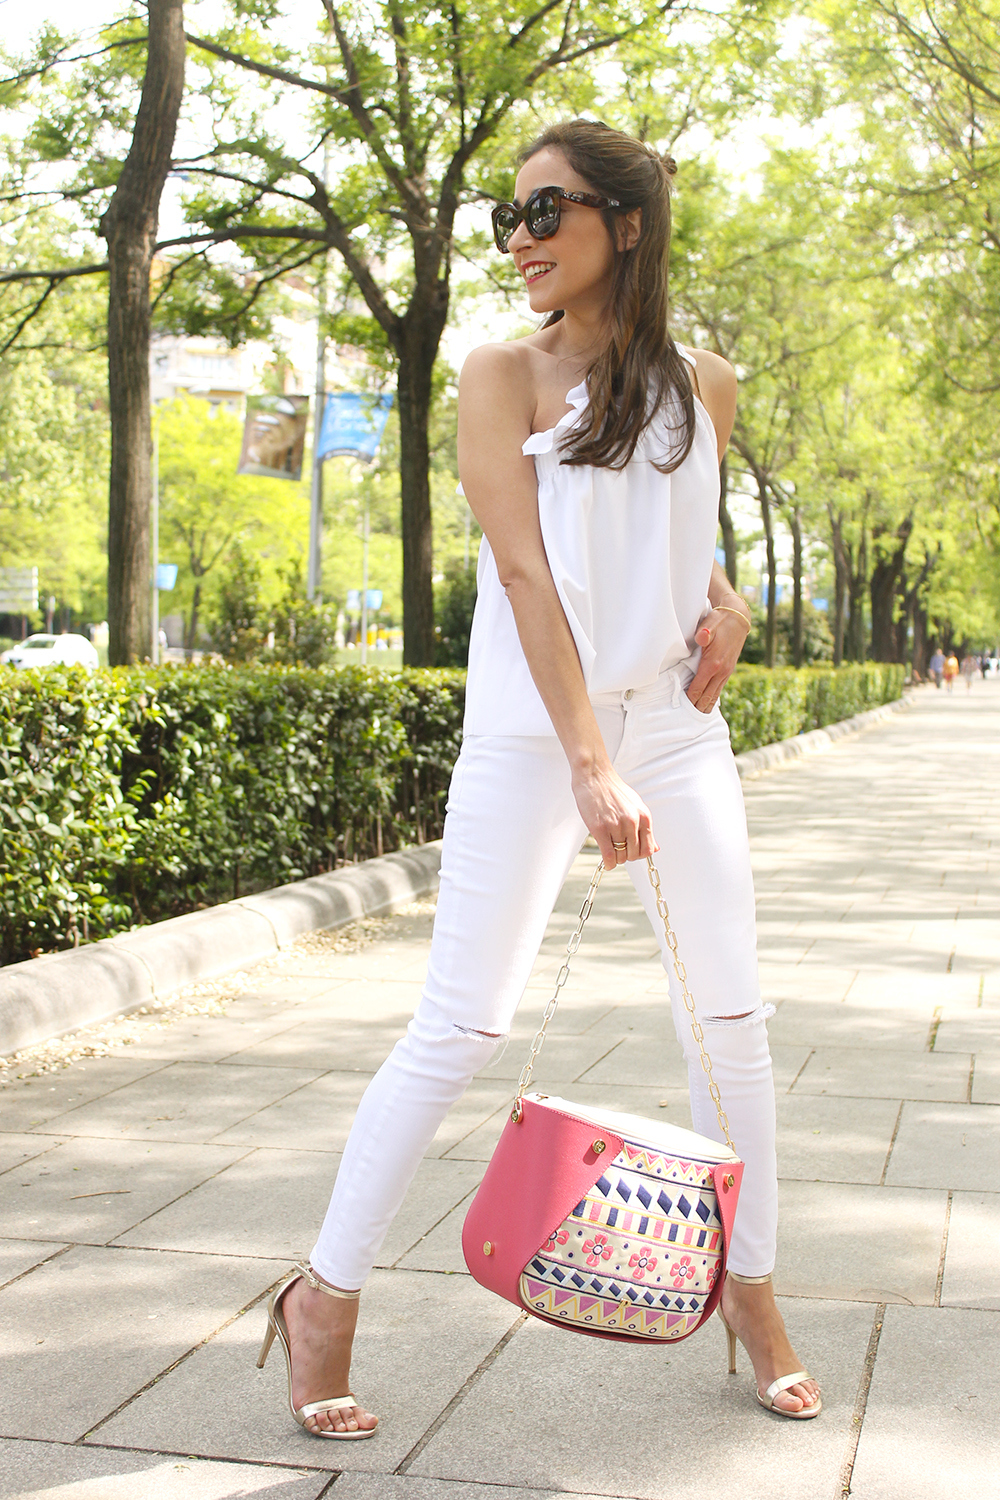 white outfit ripped jeans asymmetrical top pamapamar céline sunnies massimo dutti sandals fashion style06